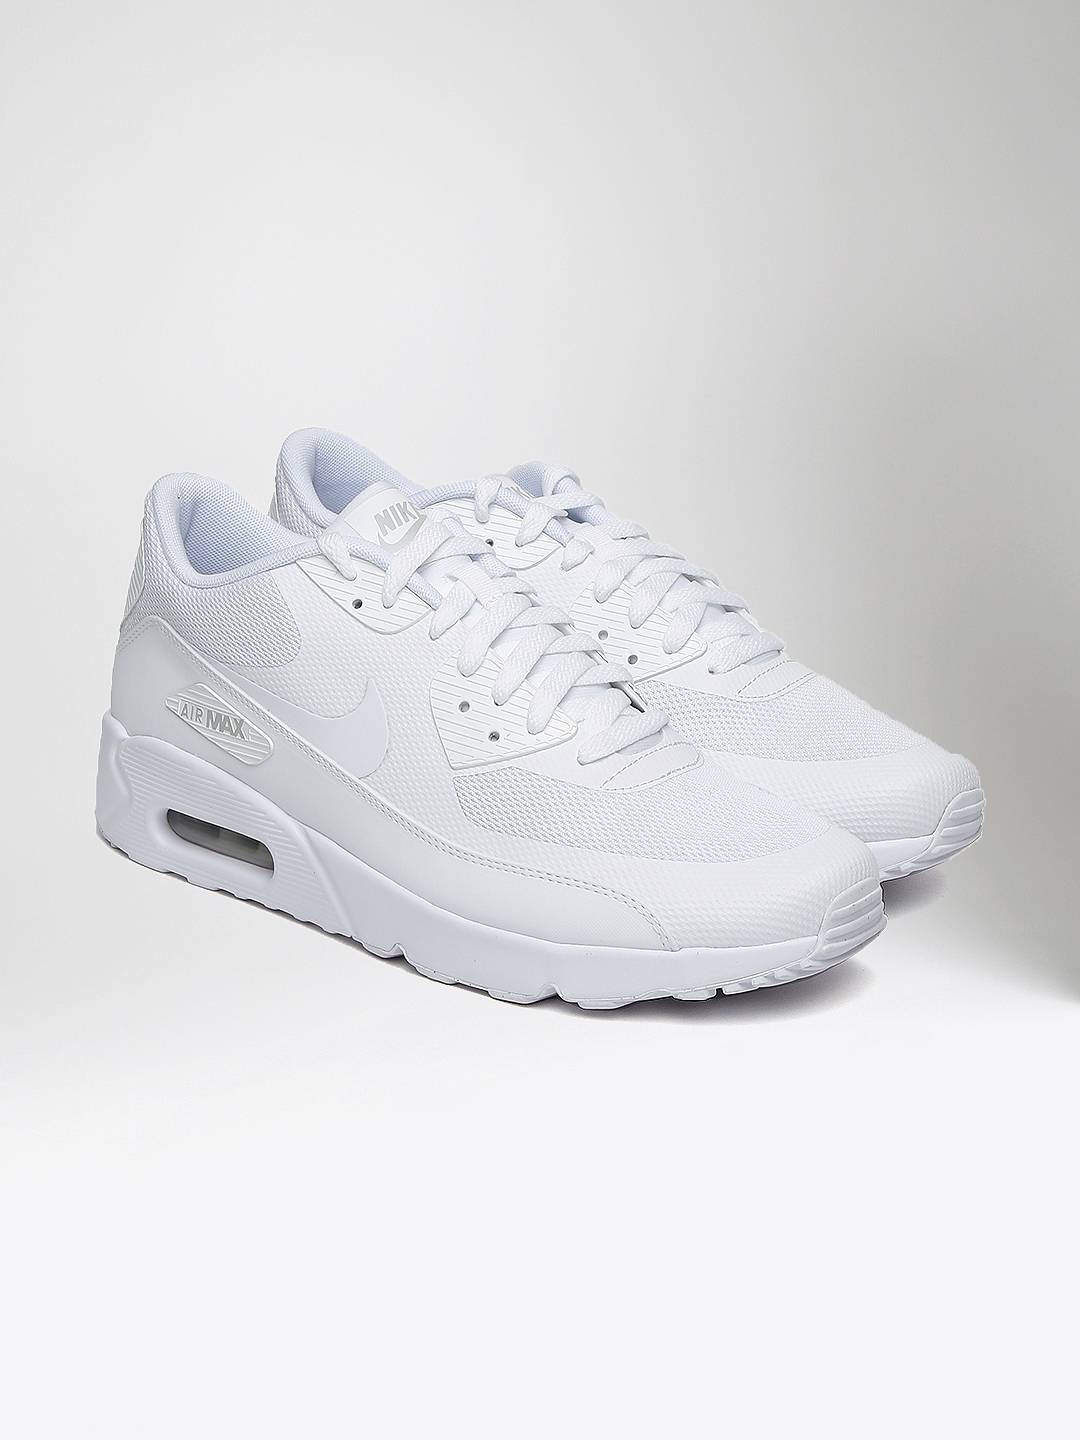 half off 2d0fb c9e71 Nike Men White Air Max 90 Ultra 2.0 Essential Sneakers